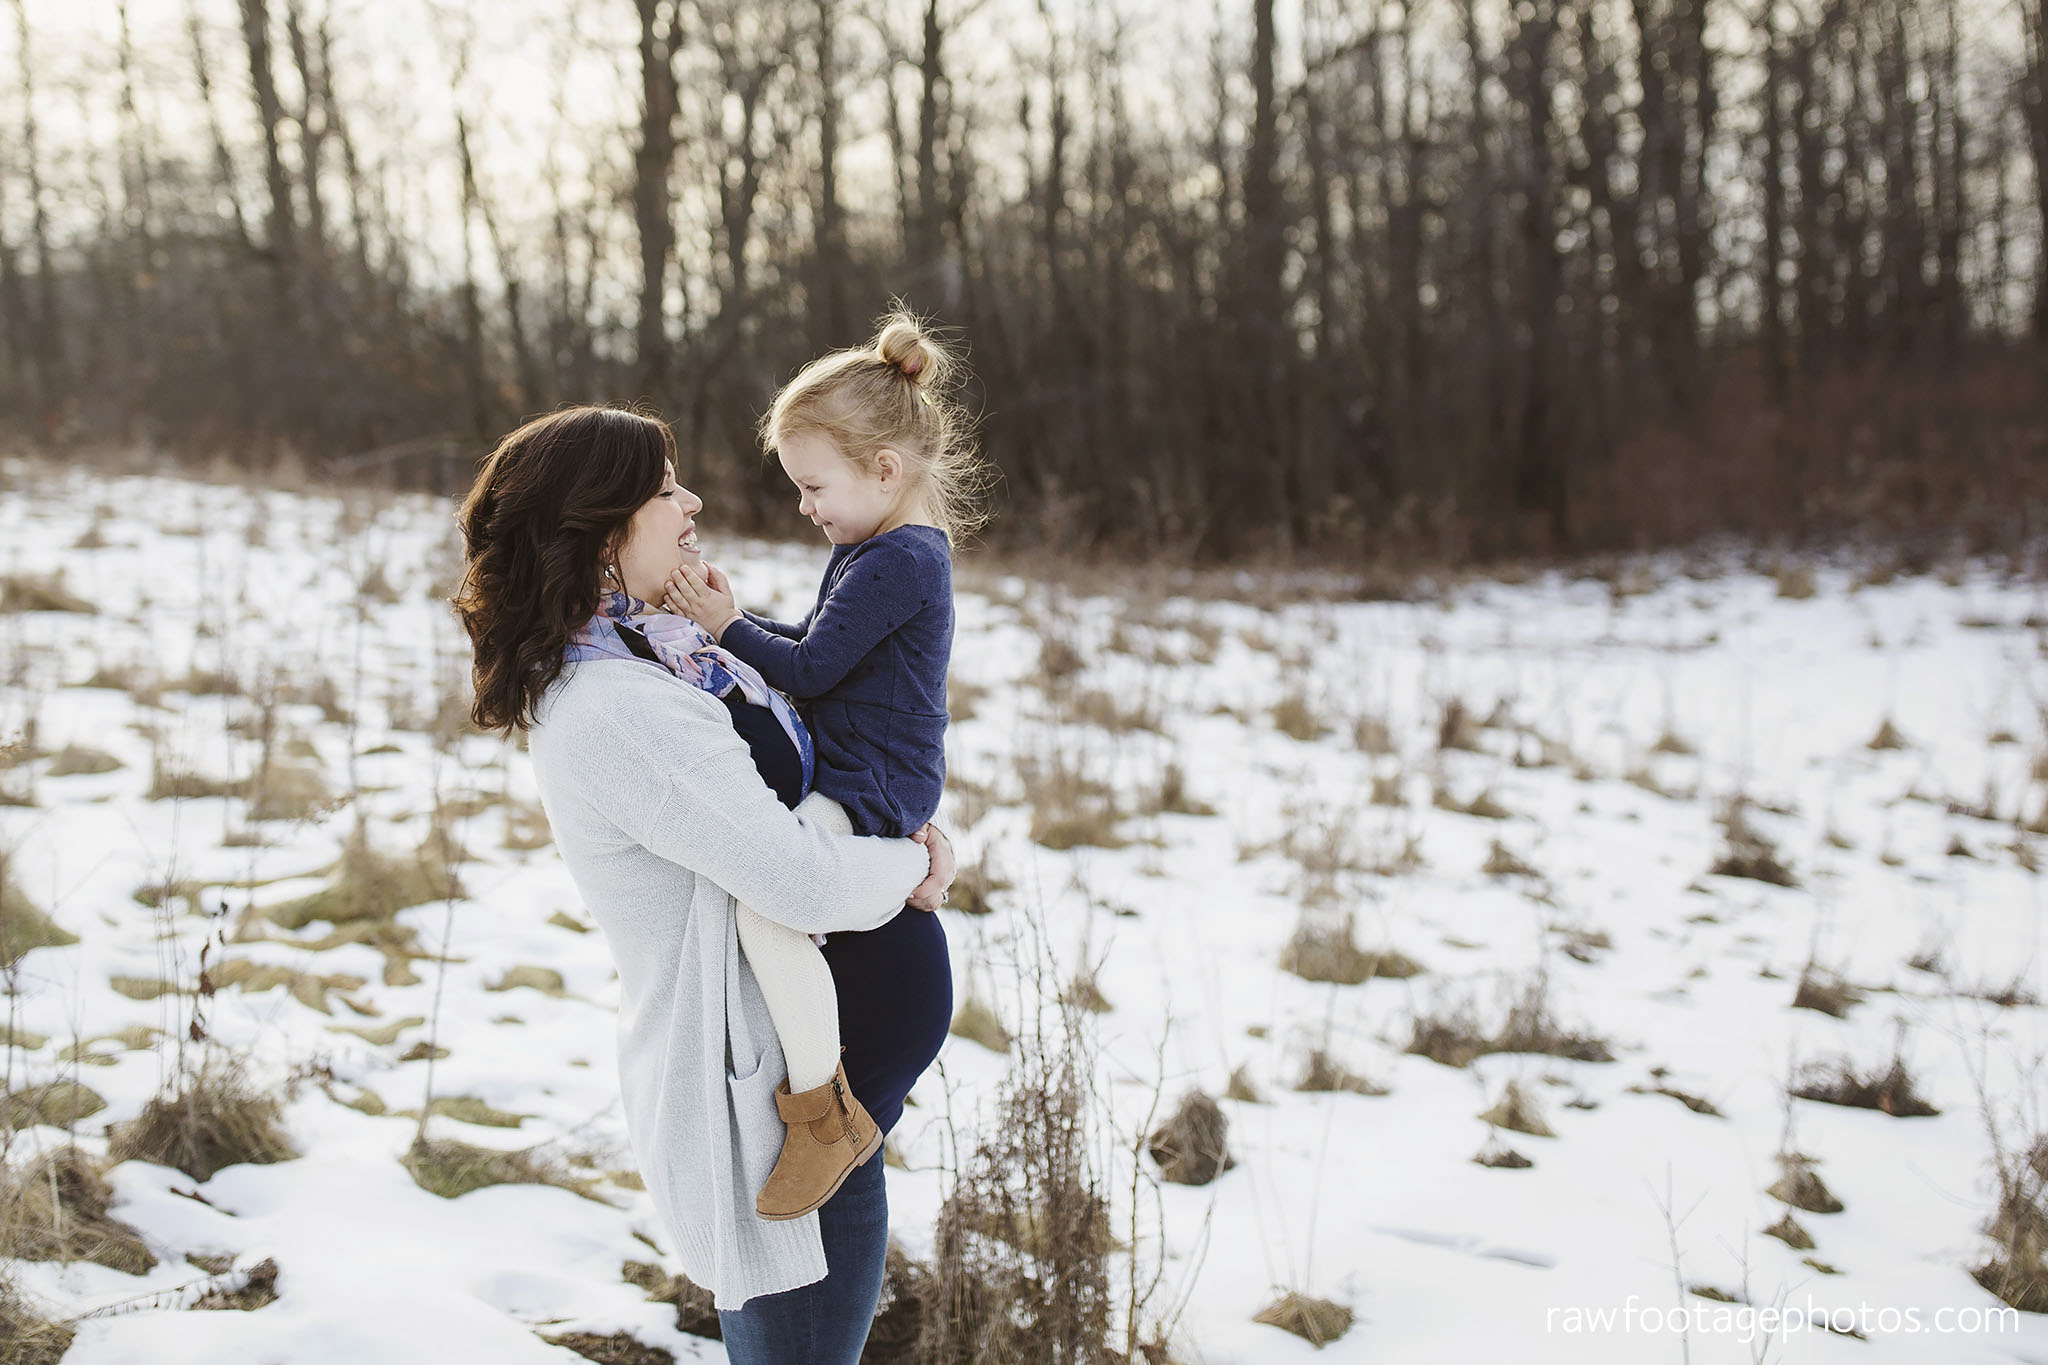 London_Ontario_Maternity_Photographer-Maternity_Session-Family_Photography-Winter_Photos-Raw_Footage_Photography010.jpg